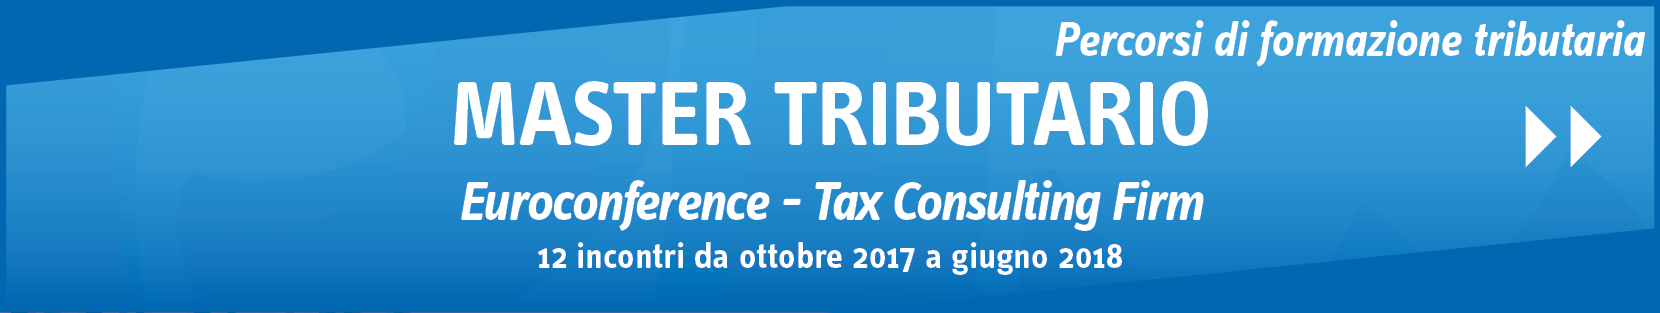 Master Tributario Euroconference – Tax Consulting Firm